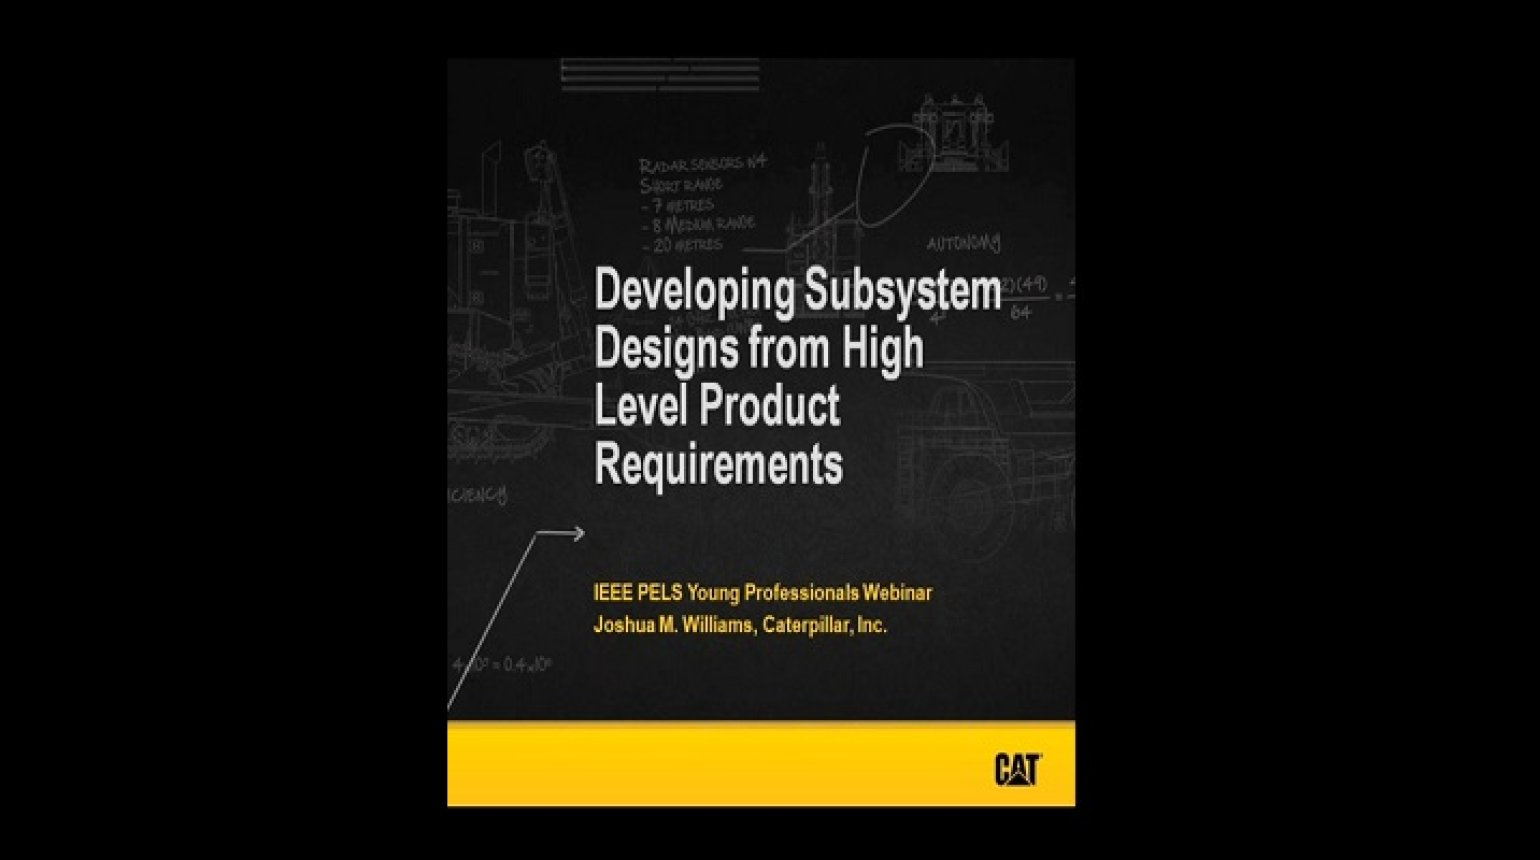 YP webinar: Developing Subsystem Designs from High Level Product Requirements Video